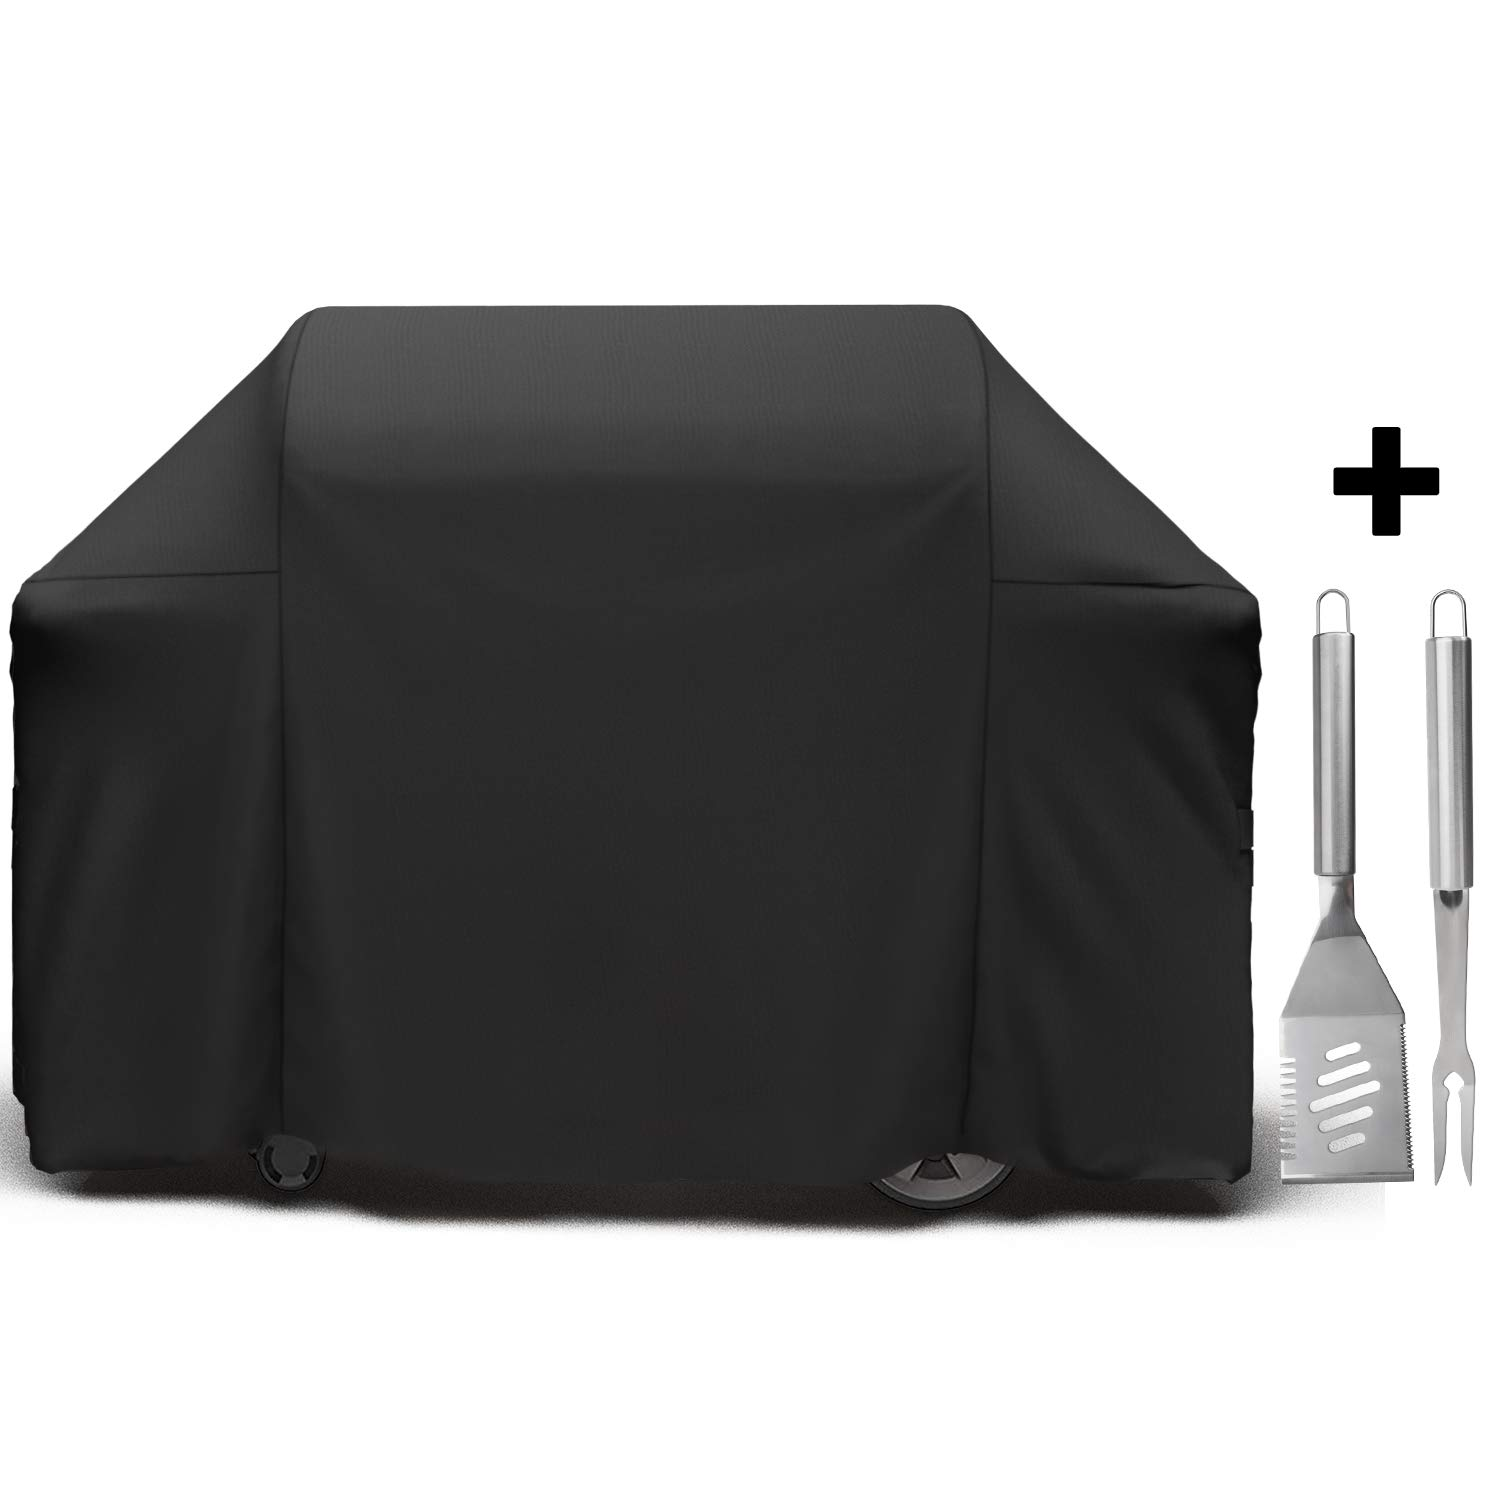 SHINESTAR 65 inch Grill Cover for Weber Genesis 4 Burner Grill, 7131 Grill Cover for Weber Genesis Grill/Genesis II E-410/Genesis 410/Genesis II E-435, Gas Grill Cover Fit All Genesis 400 Series Grill